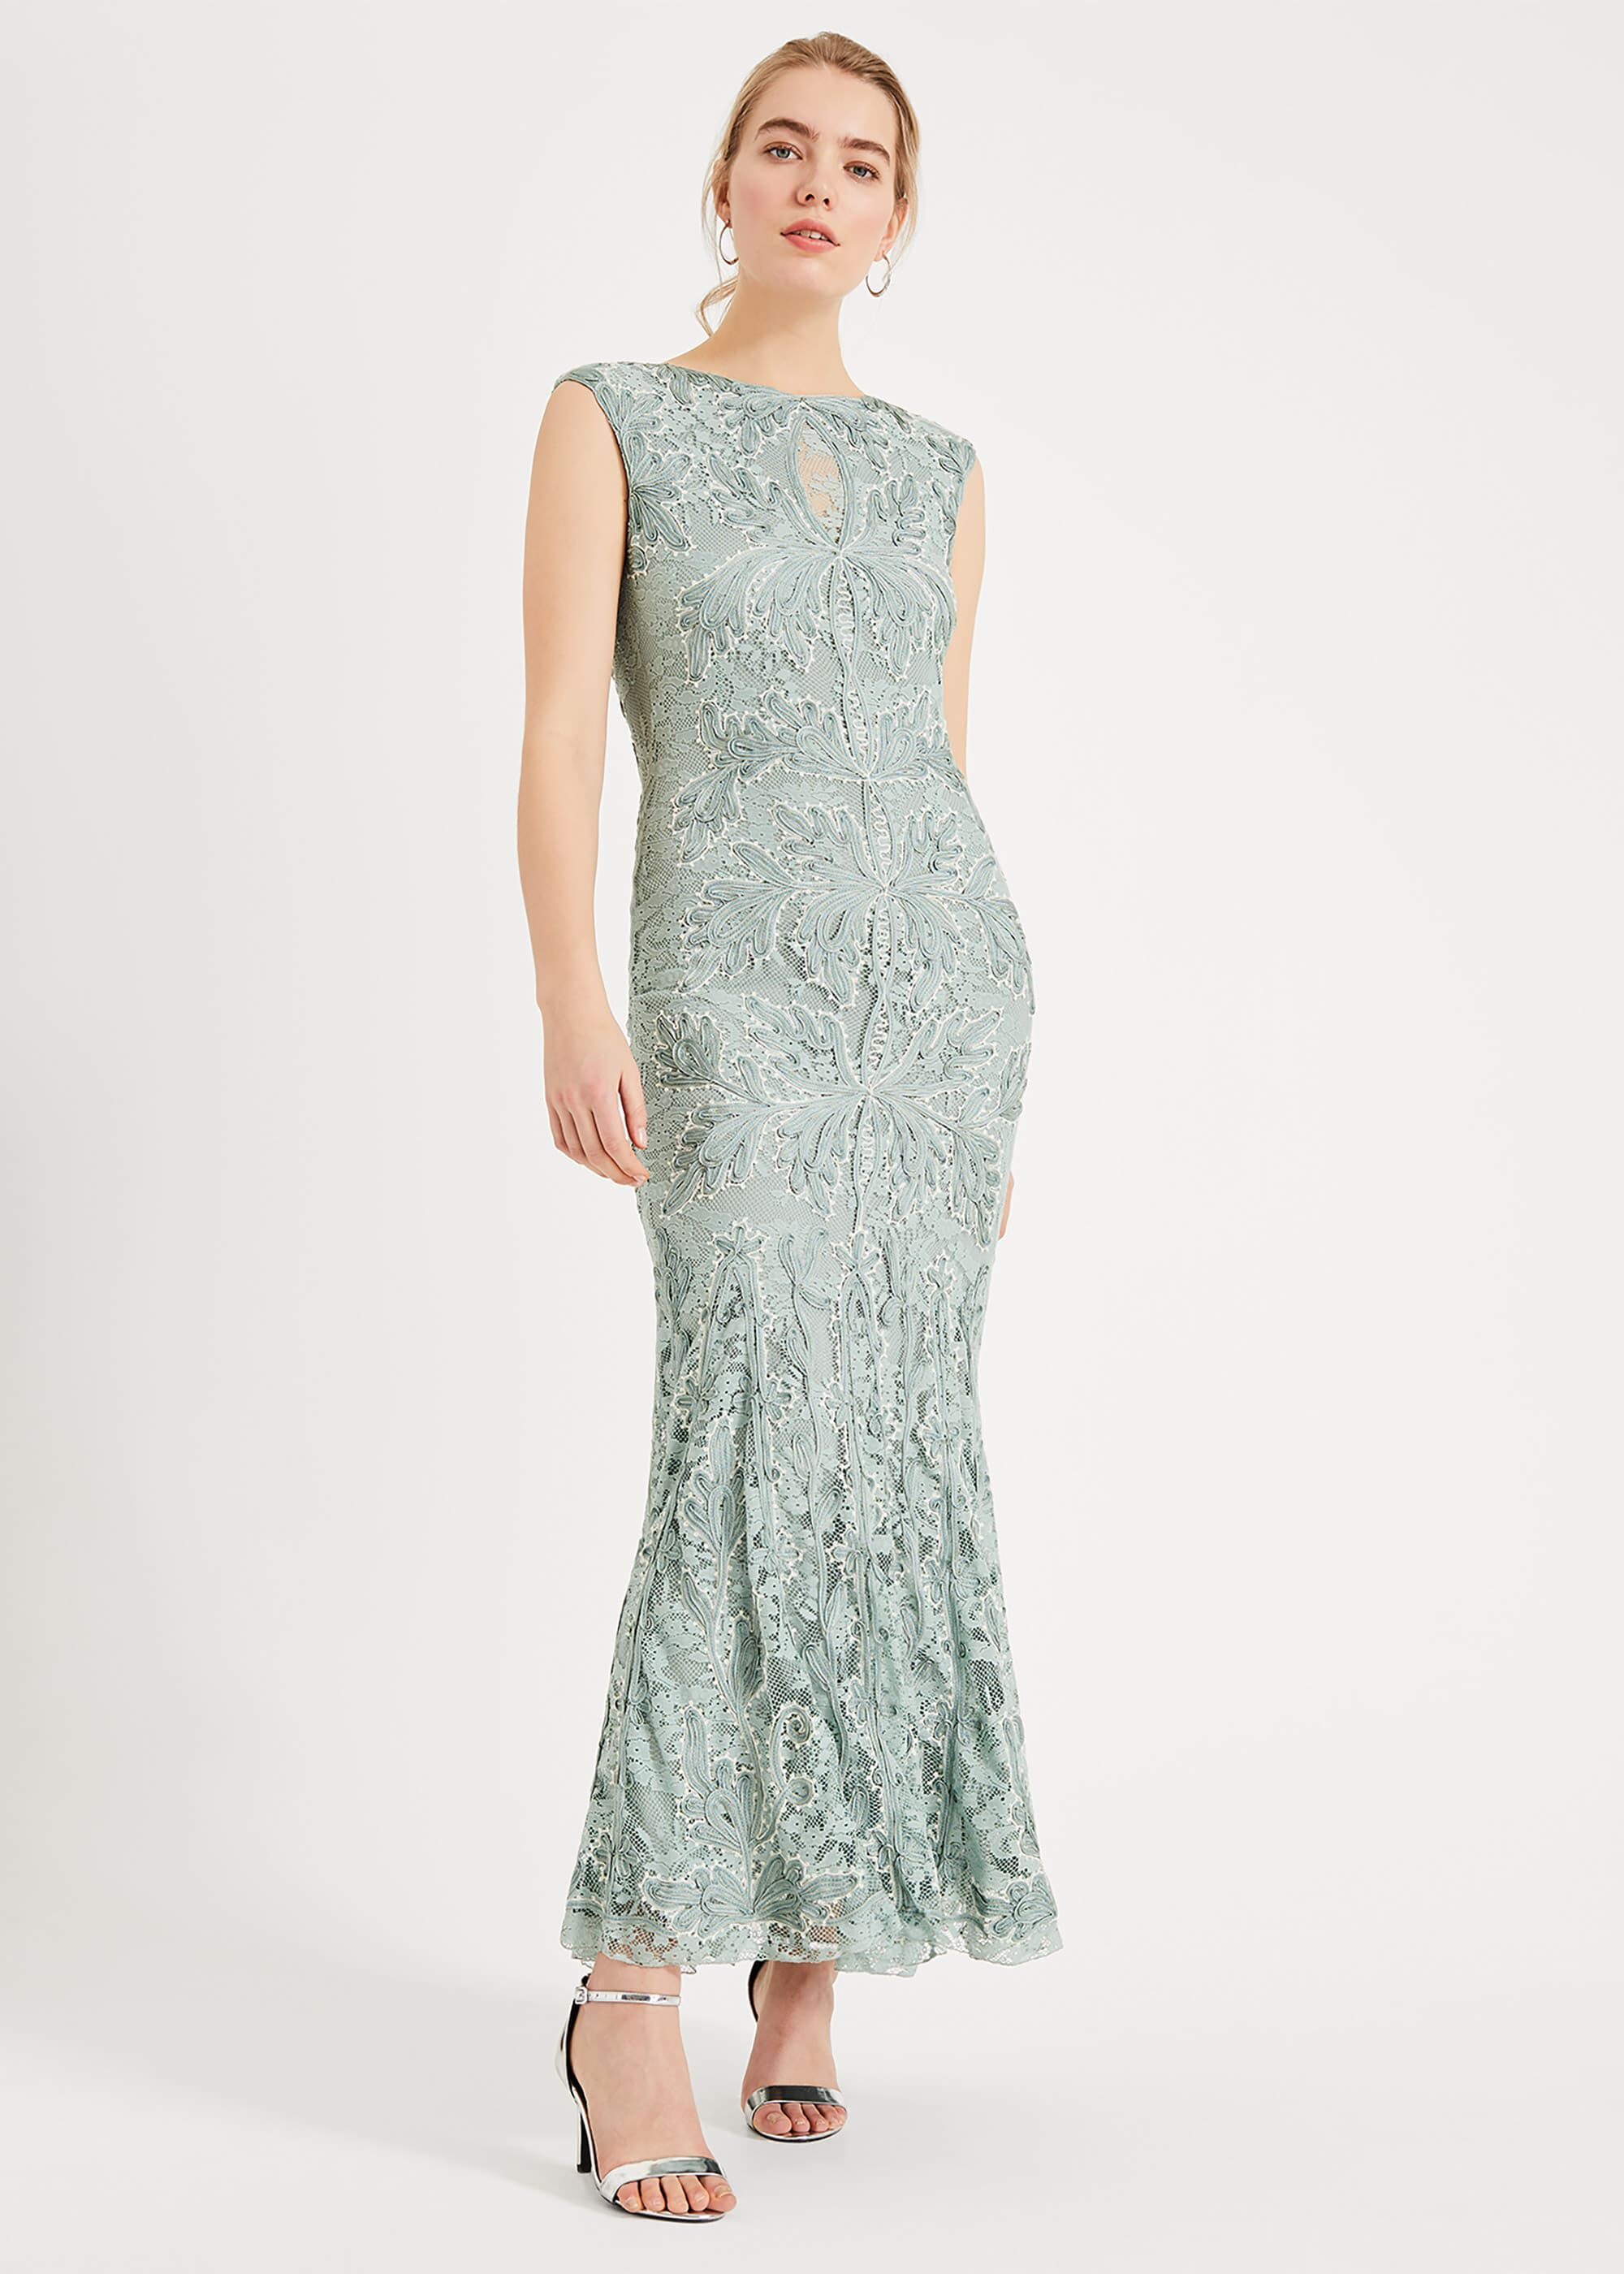 Phase Eight Paige Tapework Maxi Dress, Green, Maxi, Occasion Dress